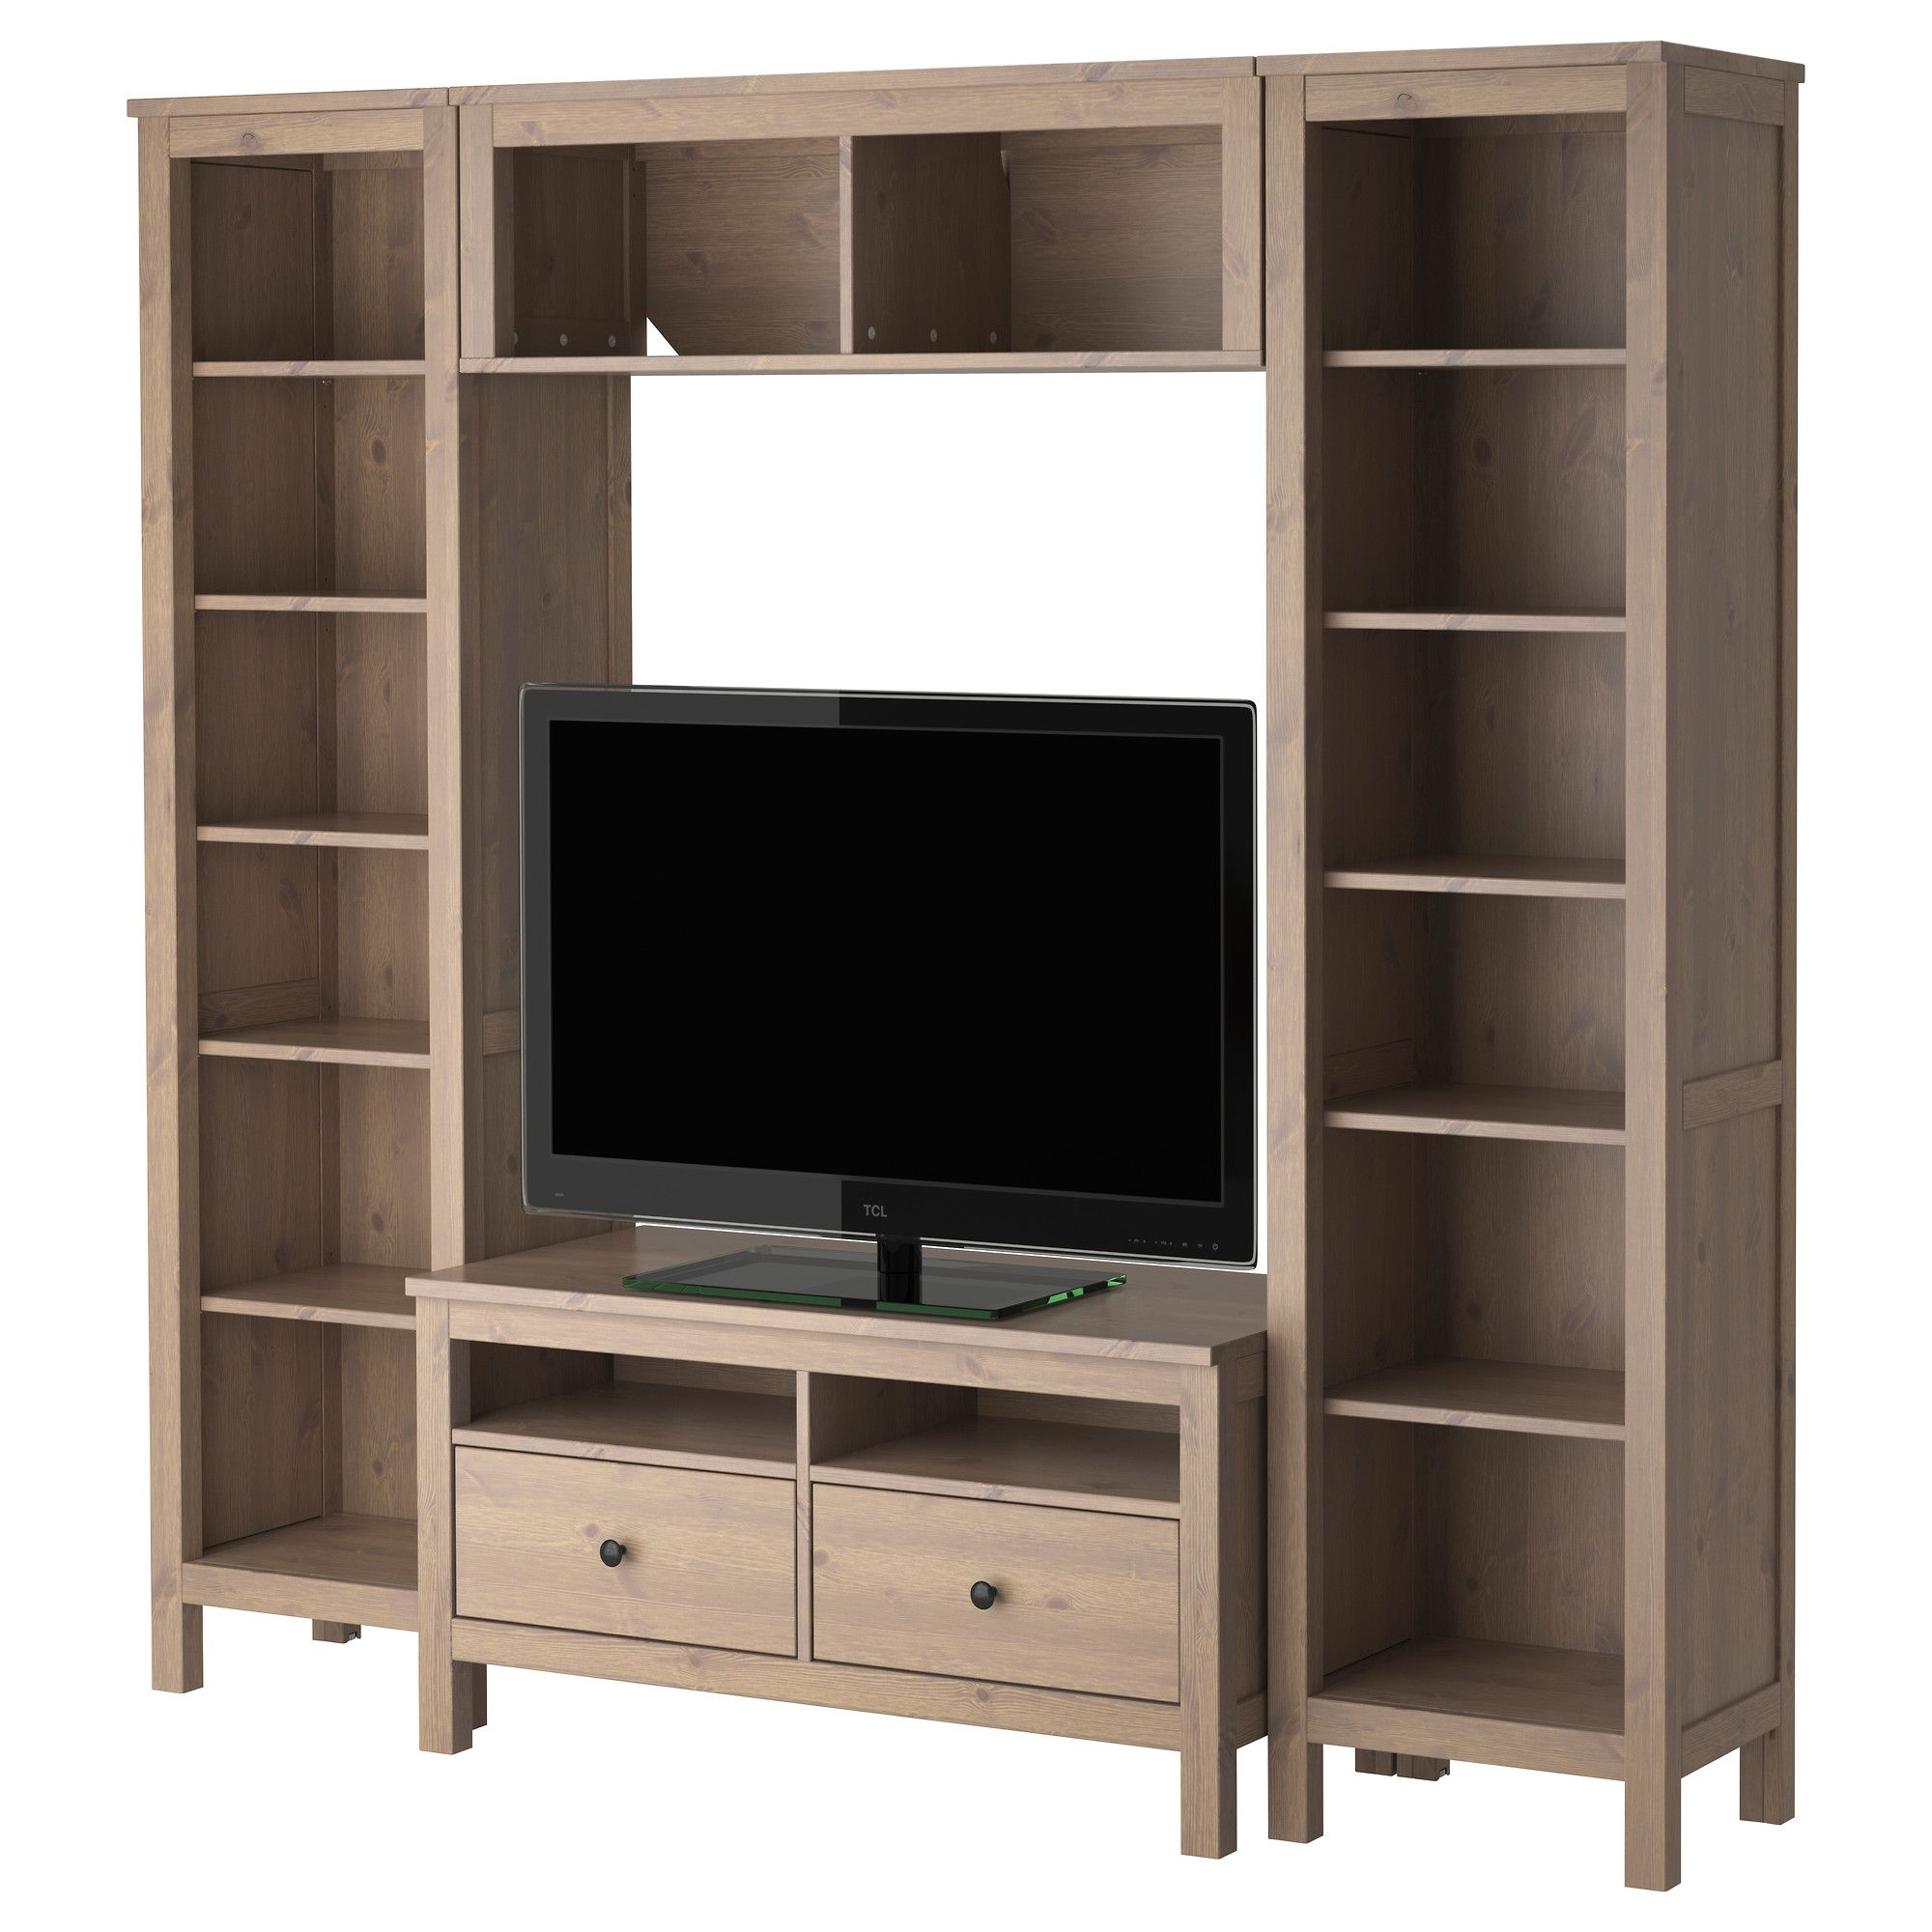 Hemnes Combinaison Meuble Tv Ikea Decoraci N Pinterest Tv  # Meuble Tv Gamer